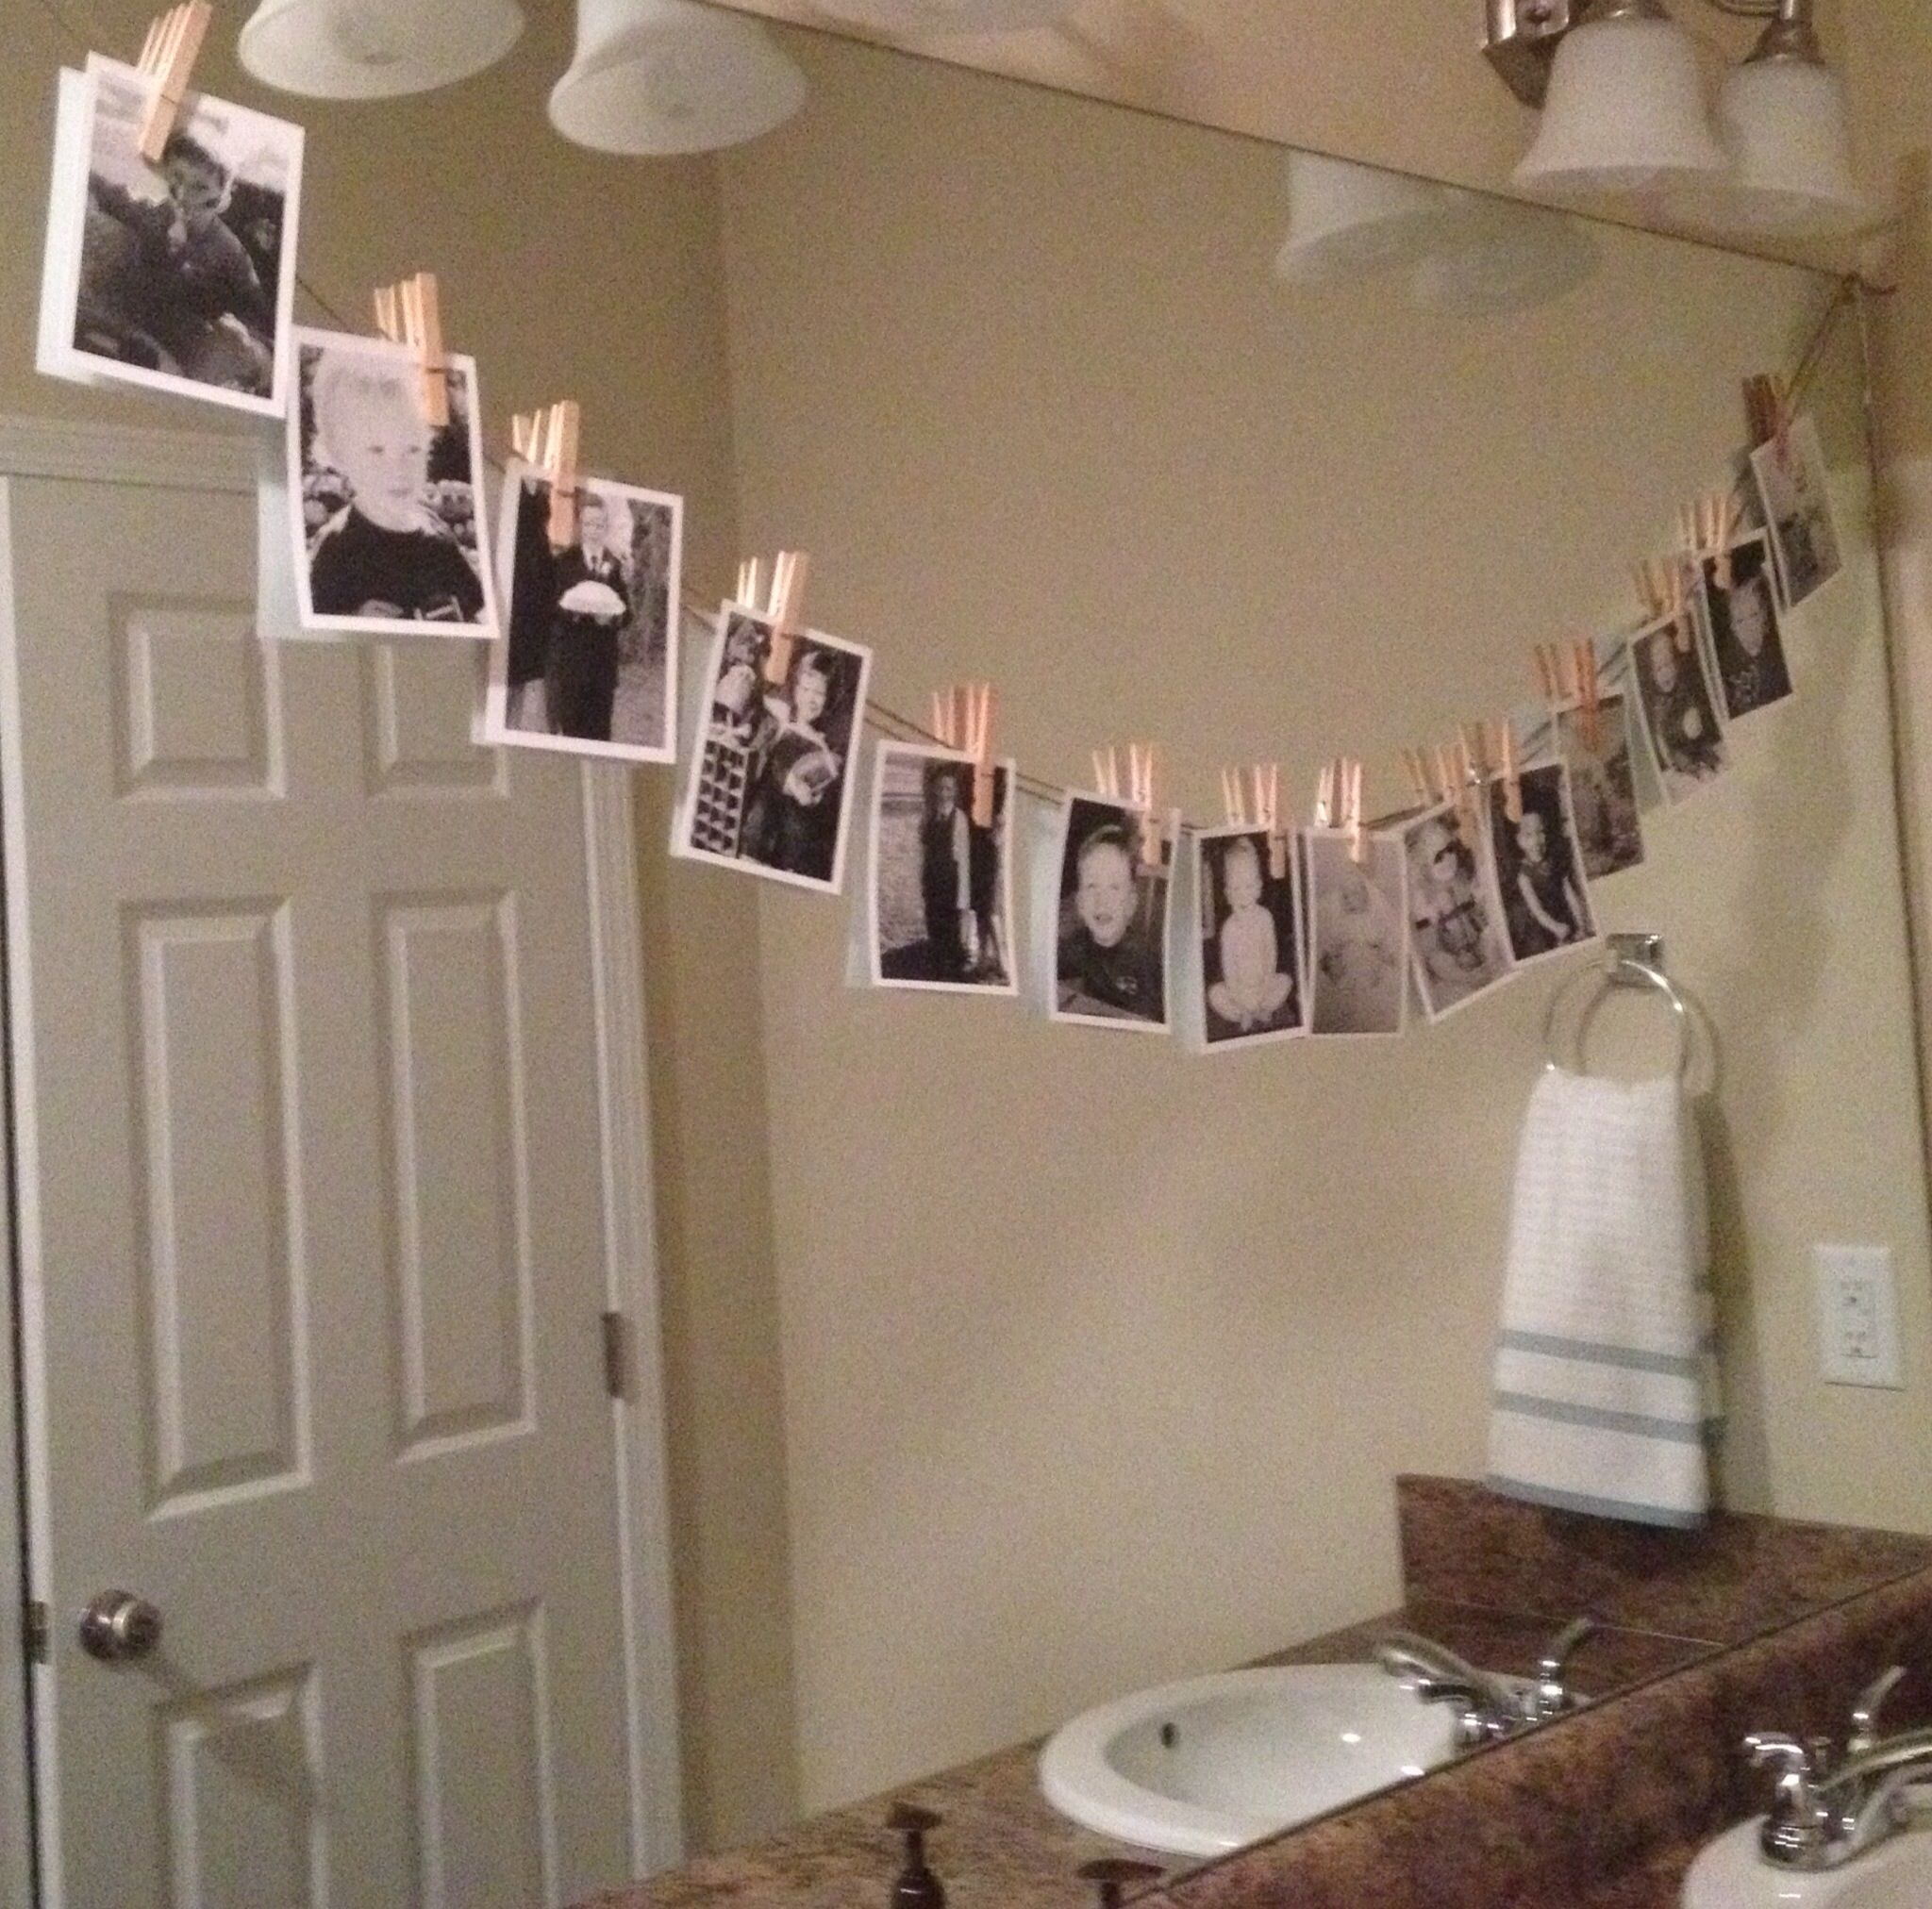 16th Birthday Party Idea-Hang B/W Pictures From Son's Life